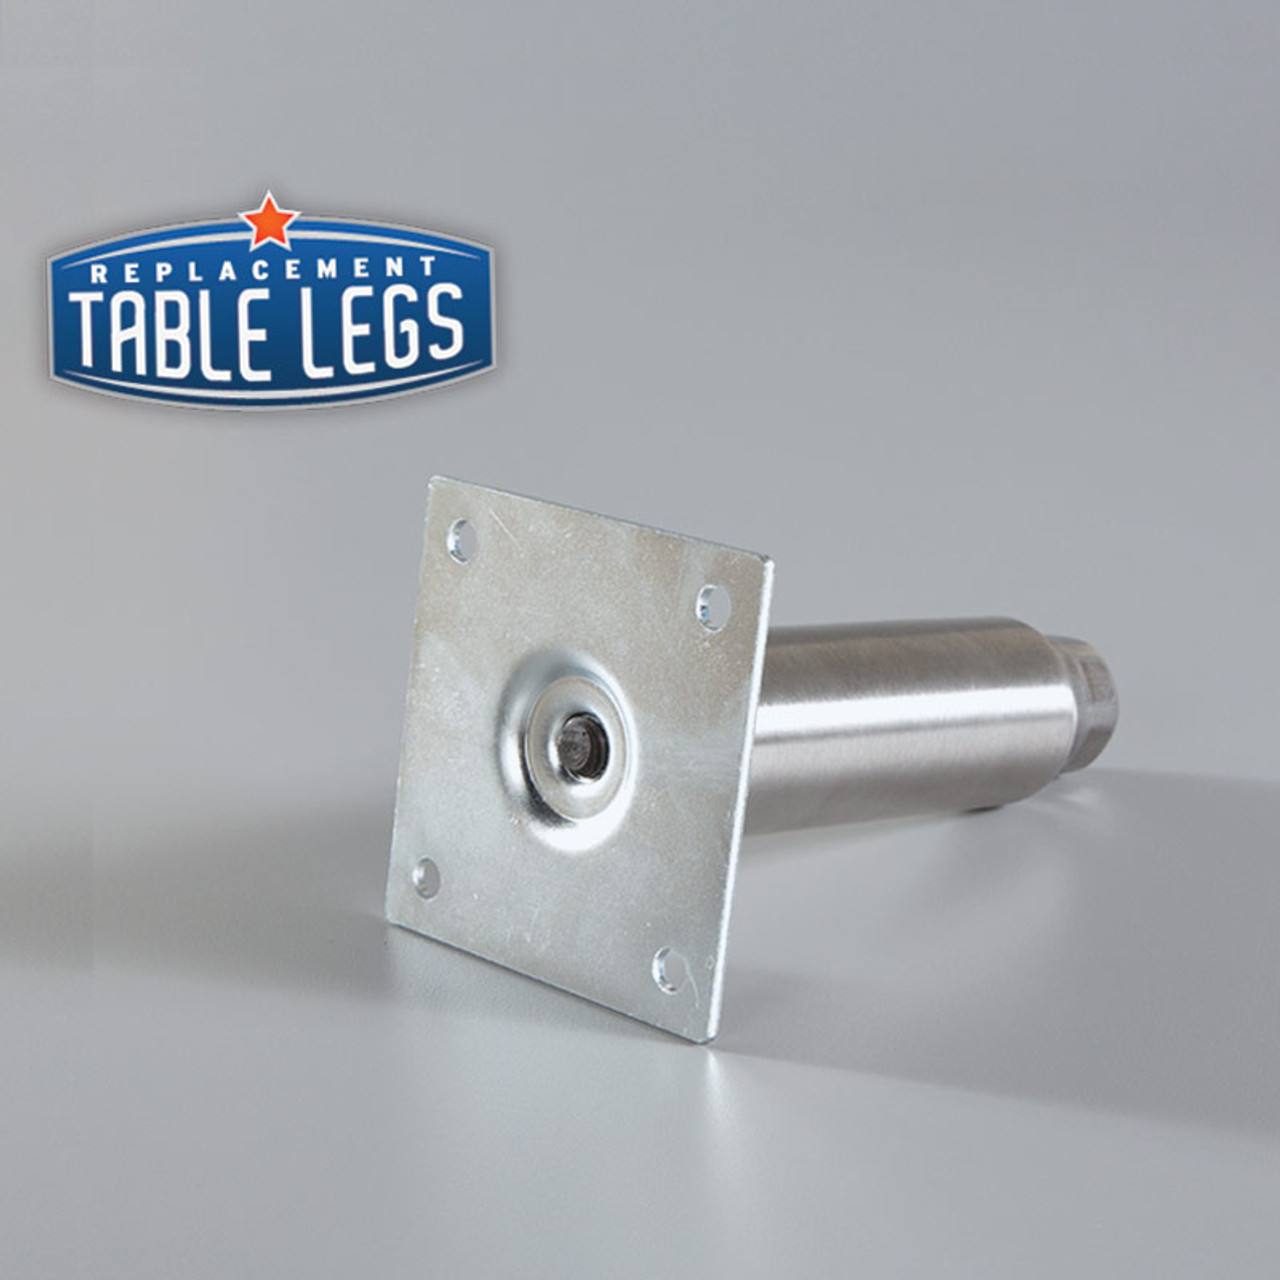 Assembled Mounting Bracket and Heavy Duty Equipment Leg  - replacementtablelegs.com